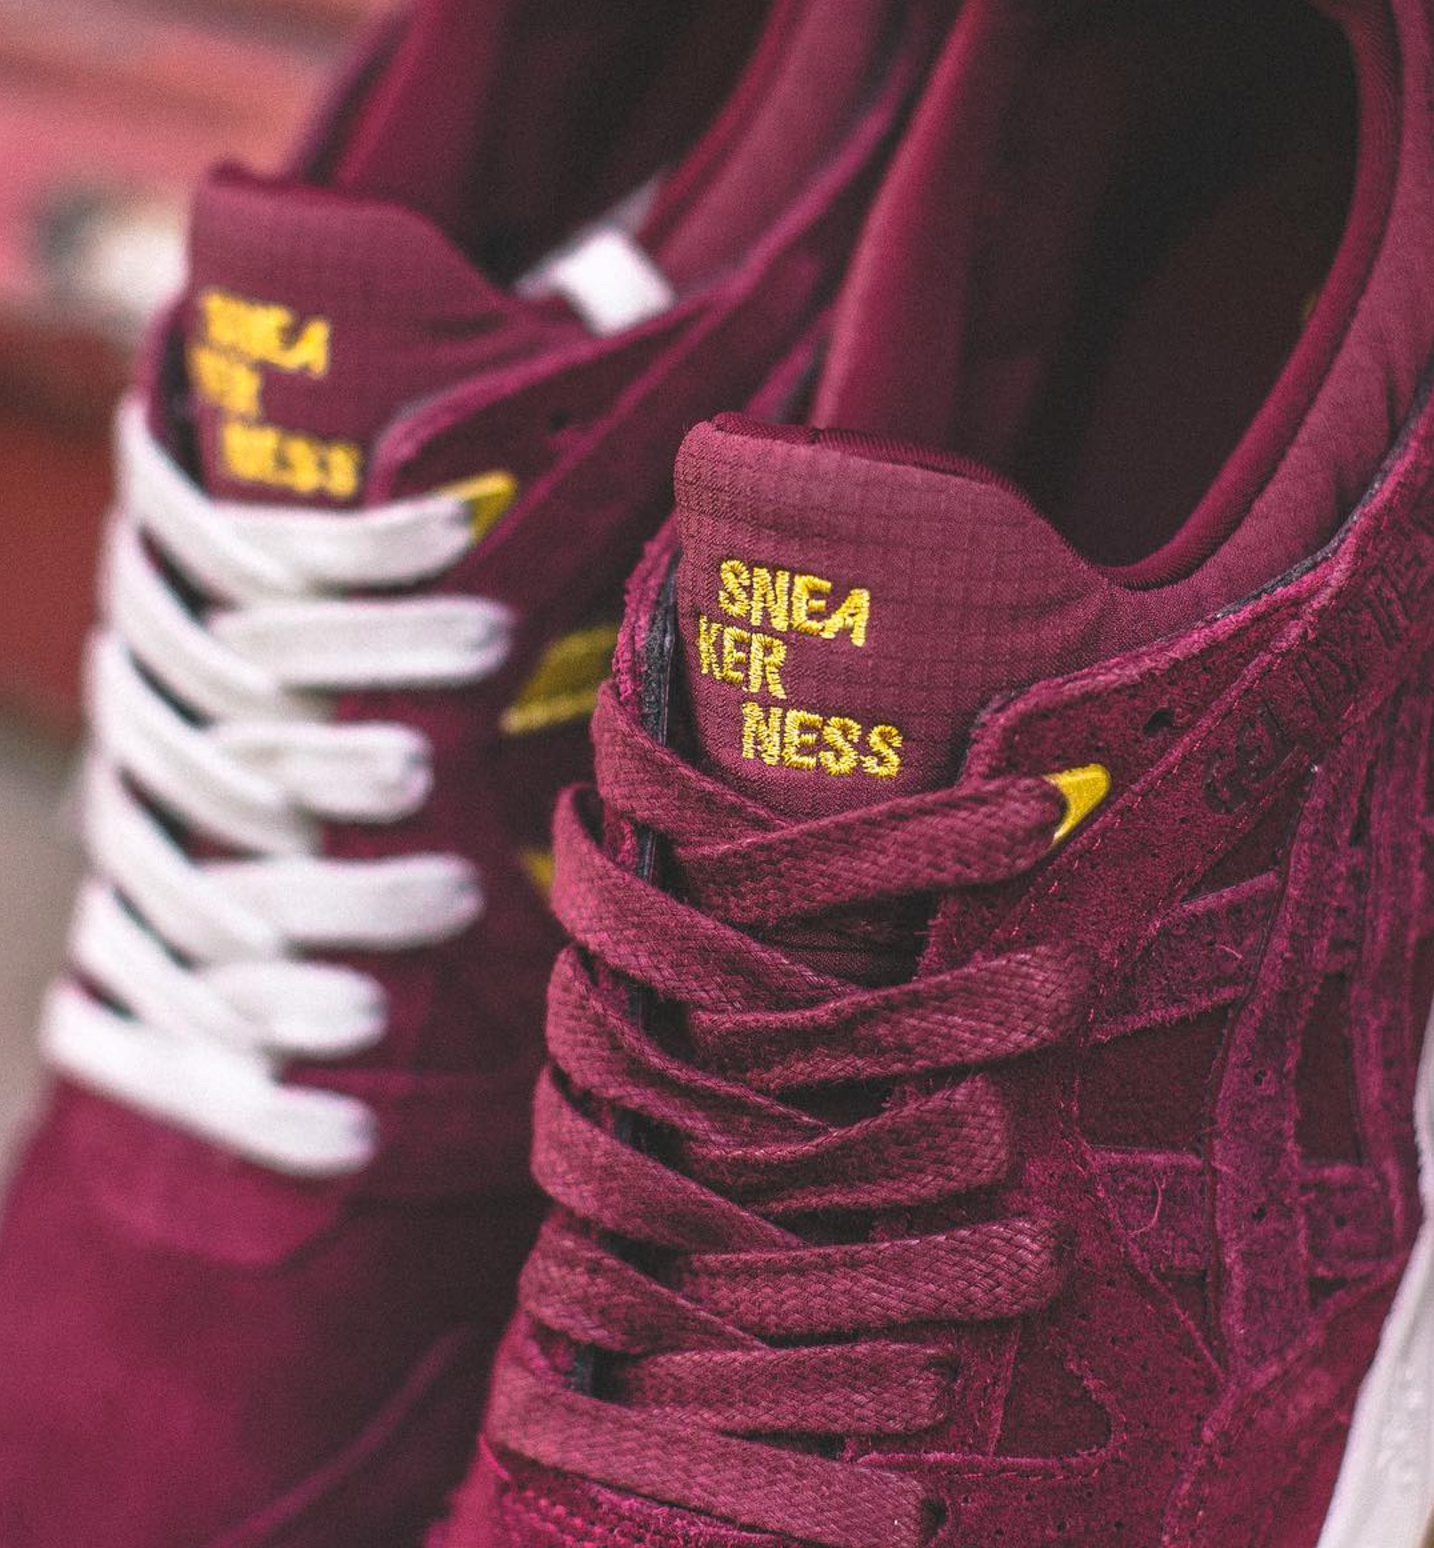 online store b30e4 87ce0 Sneakerness, the EU's Sneaker Con, Has its Own Super-Limited ...